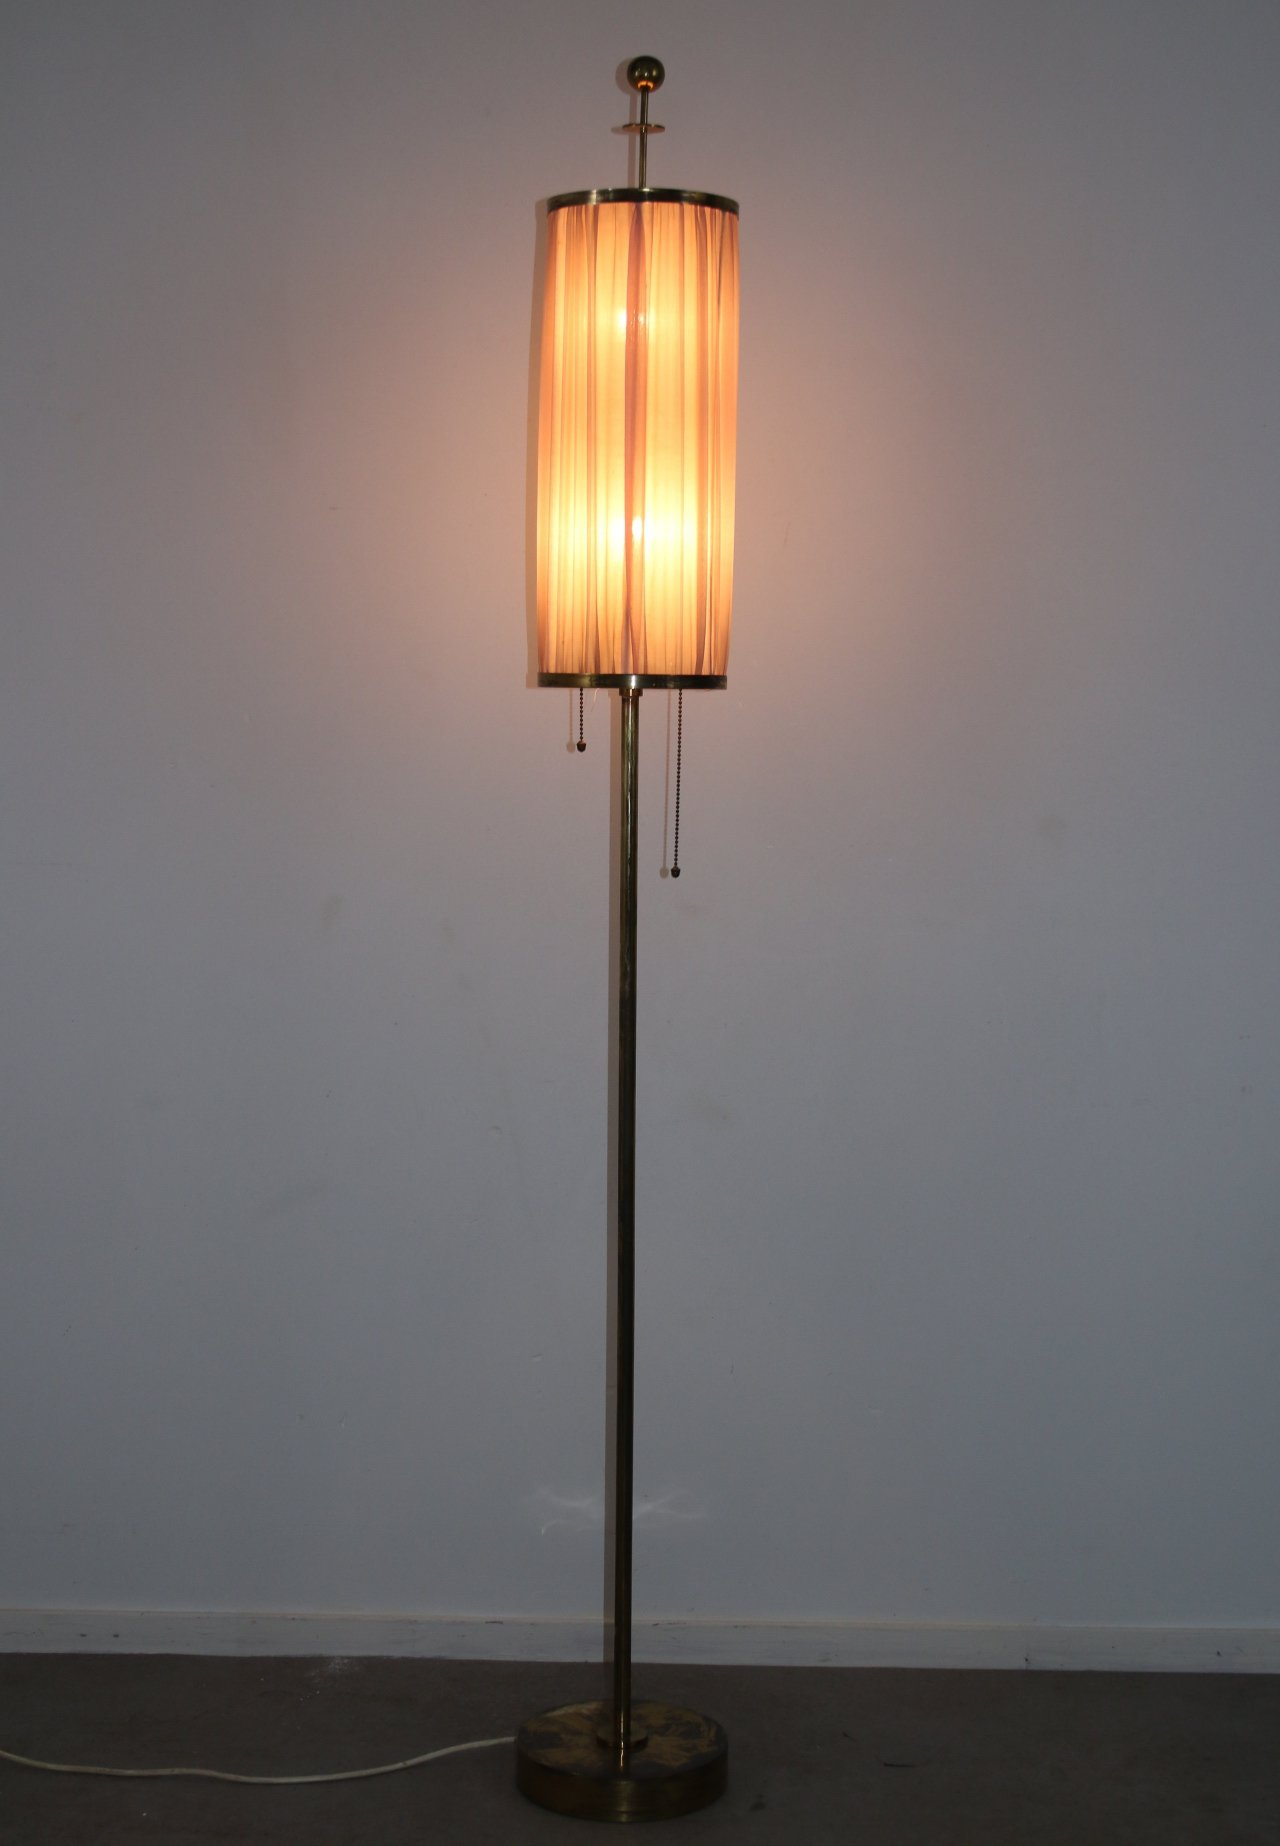 Image of: Bronze Or Brass Floor Lamp With Fabric Shade 1950s 126190